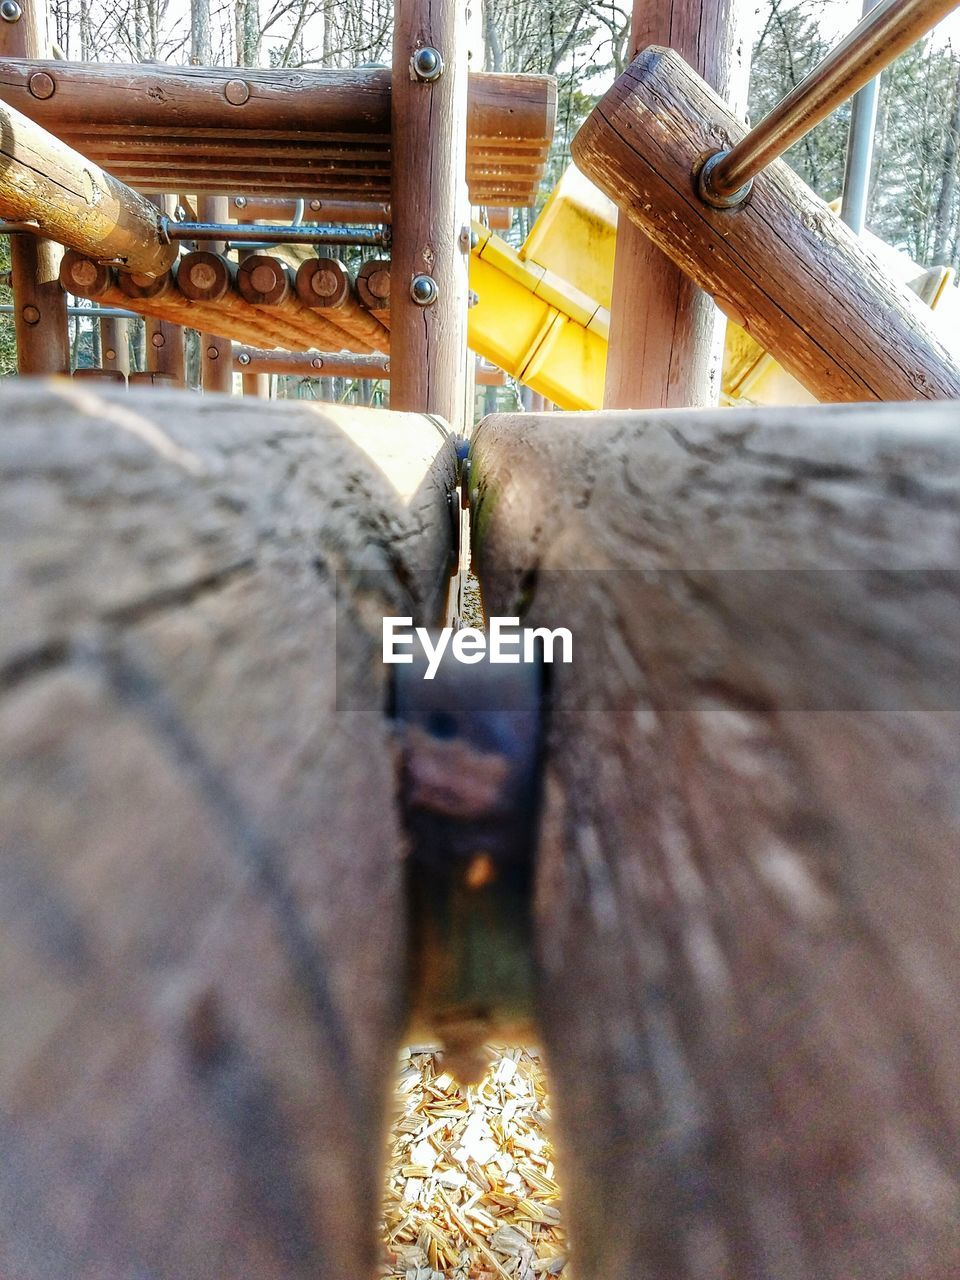 no people, focus on background, wood - material, selective focus, hanging, day, religion, spirituality, close-up, outdoors